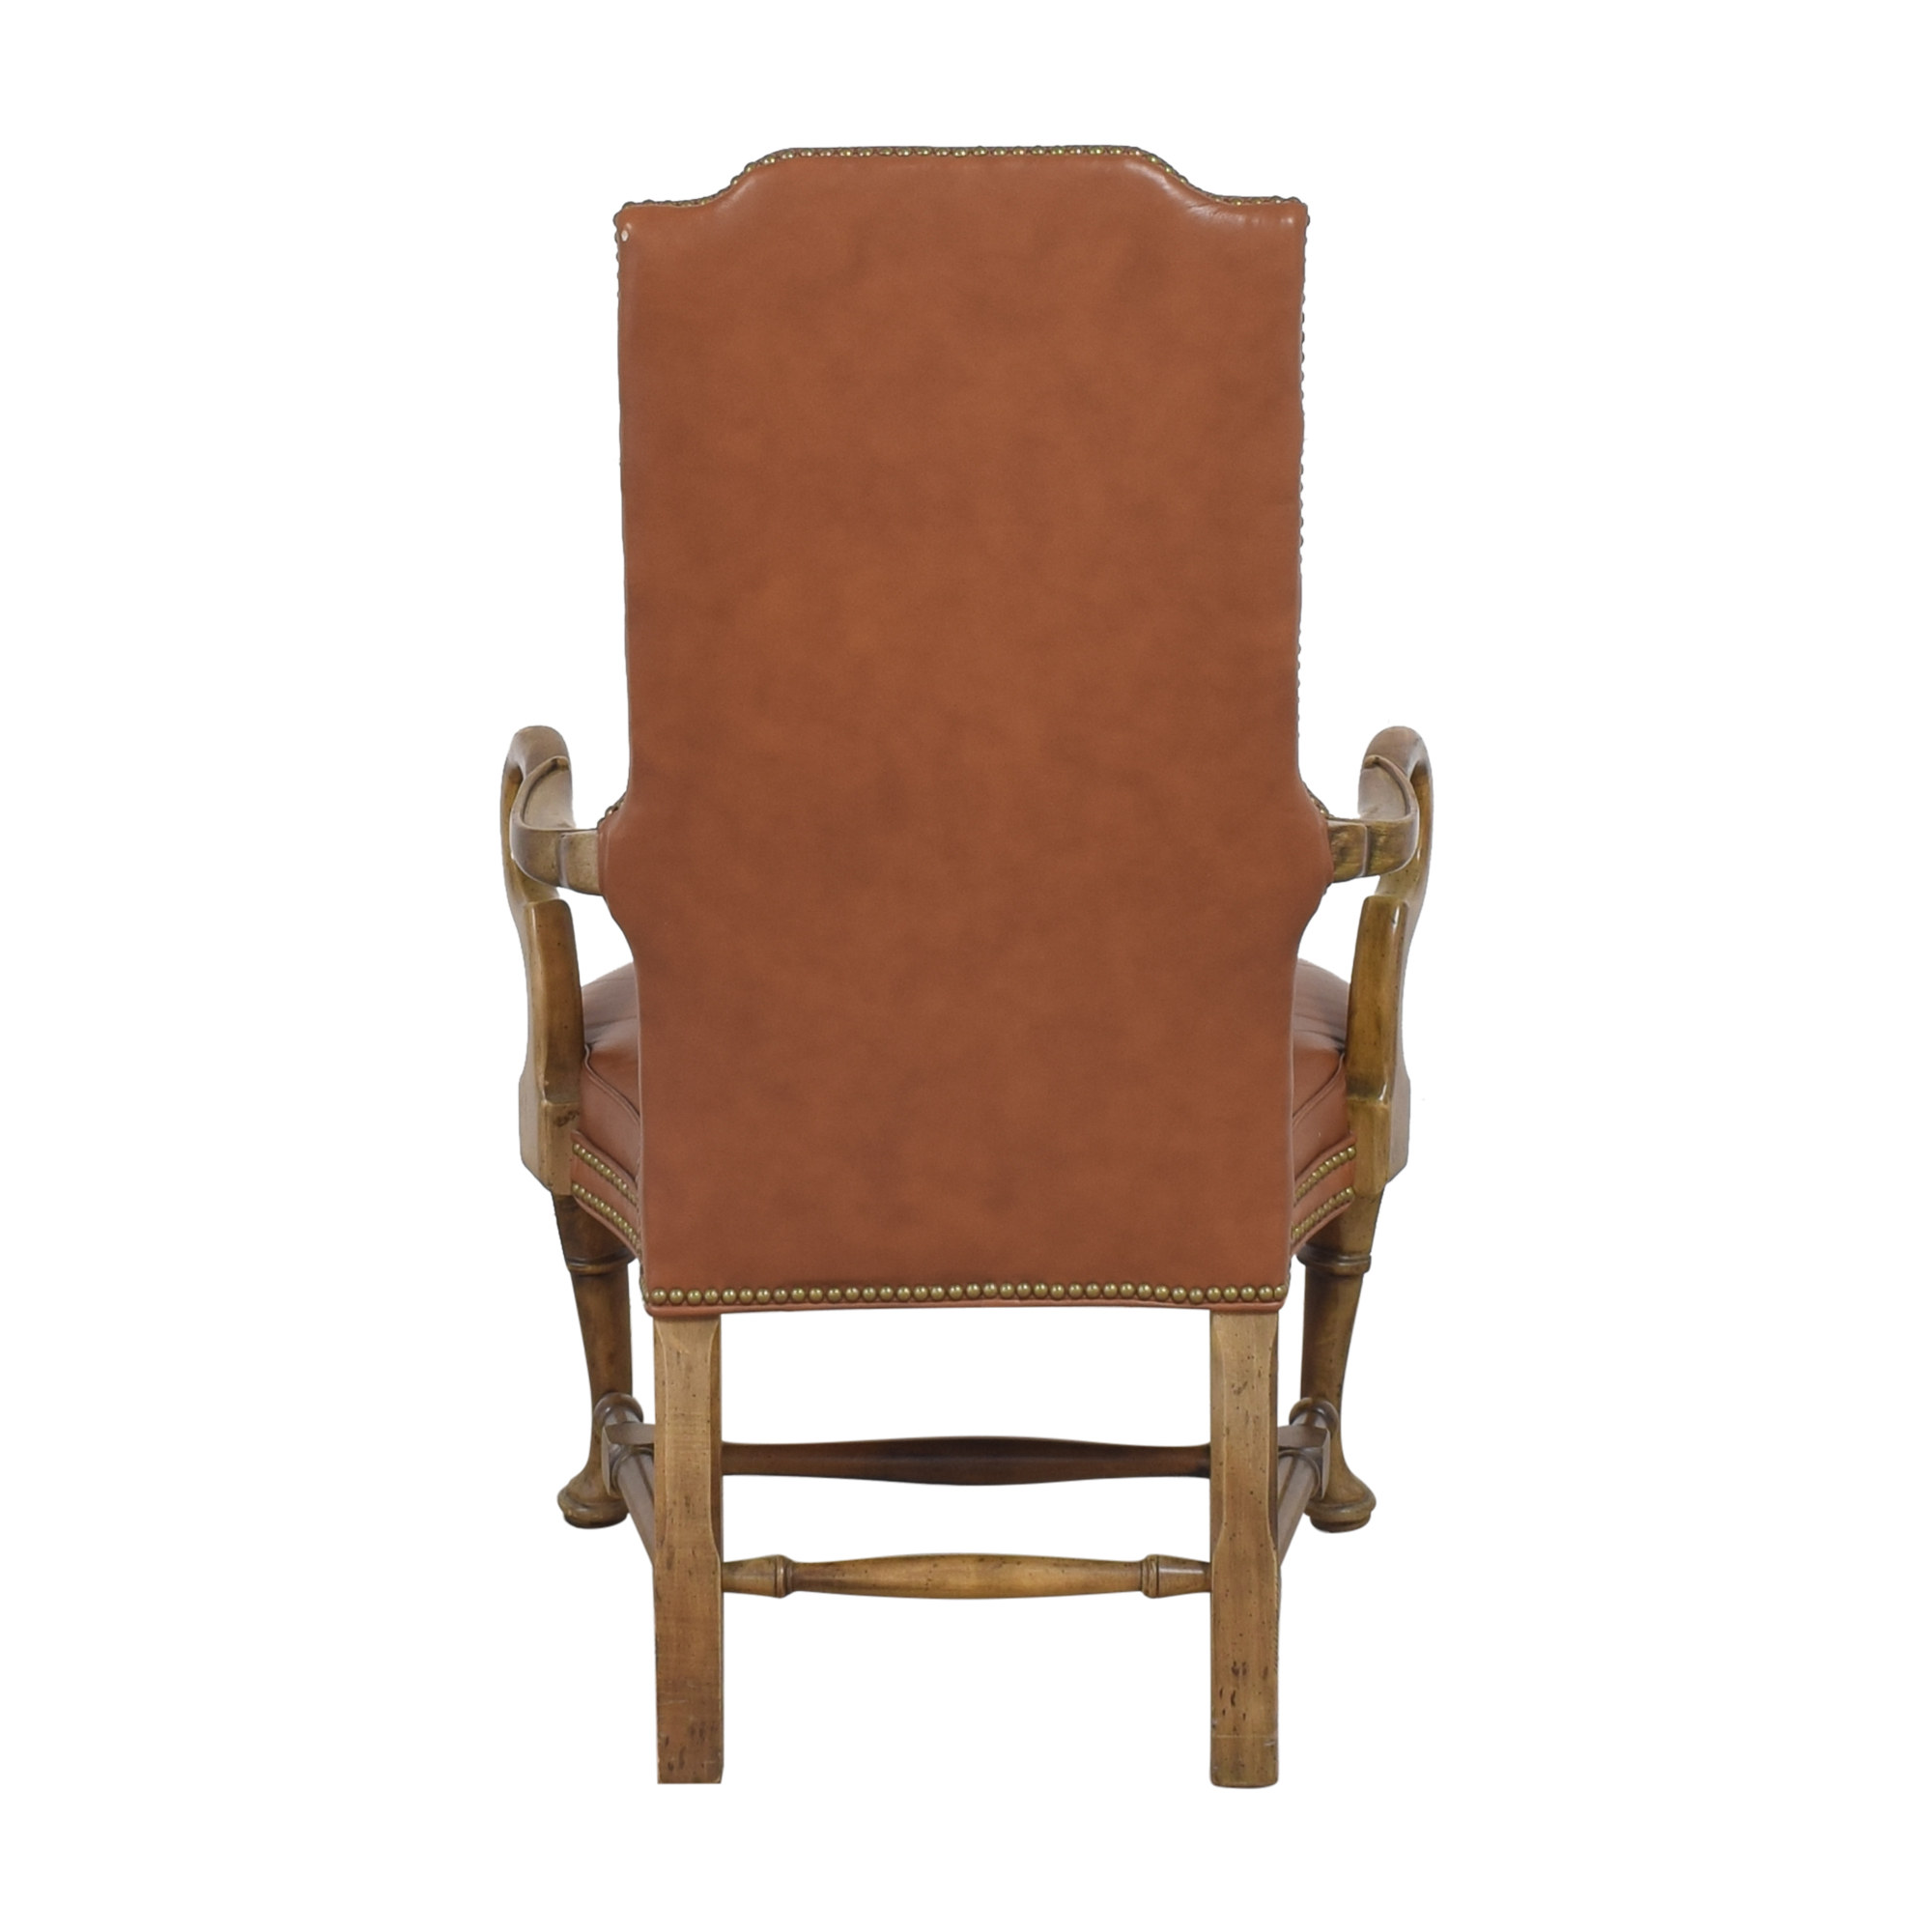 Century Chair Company Century Chair Company High Back Arm Chair for sale